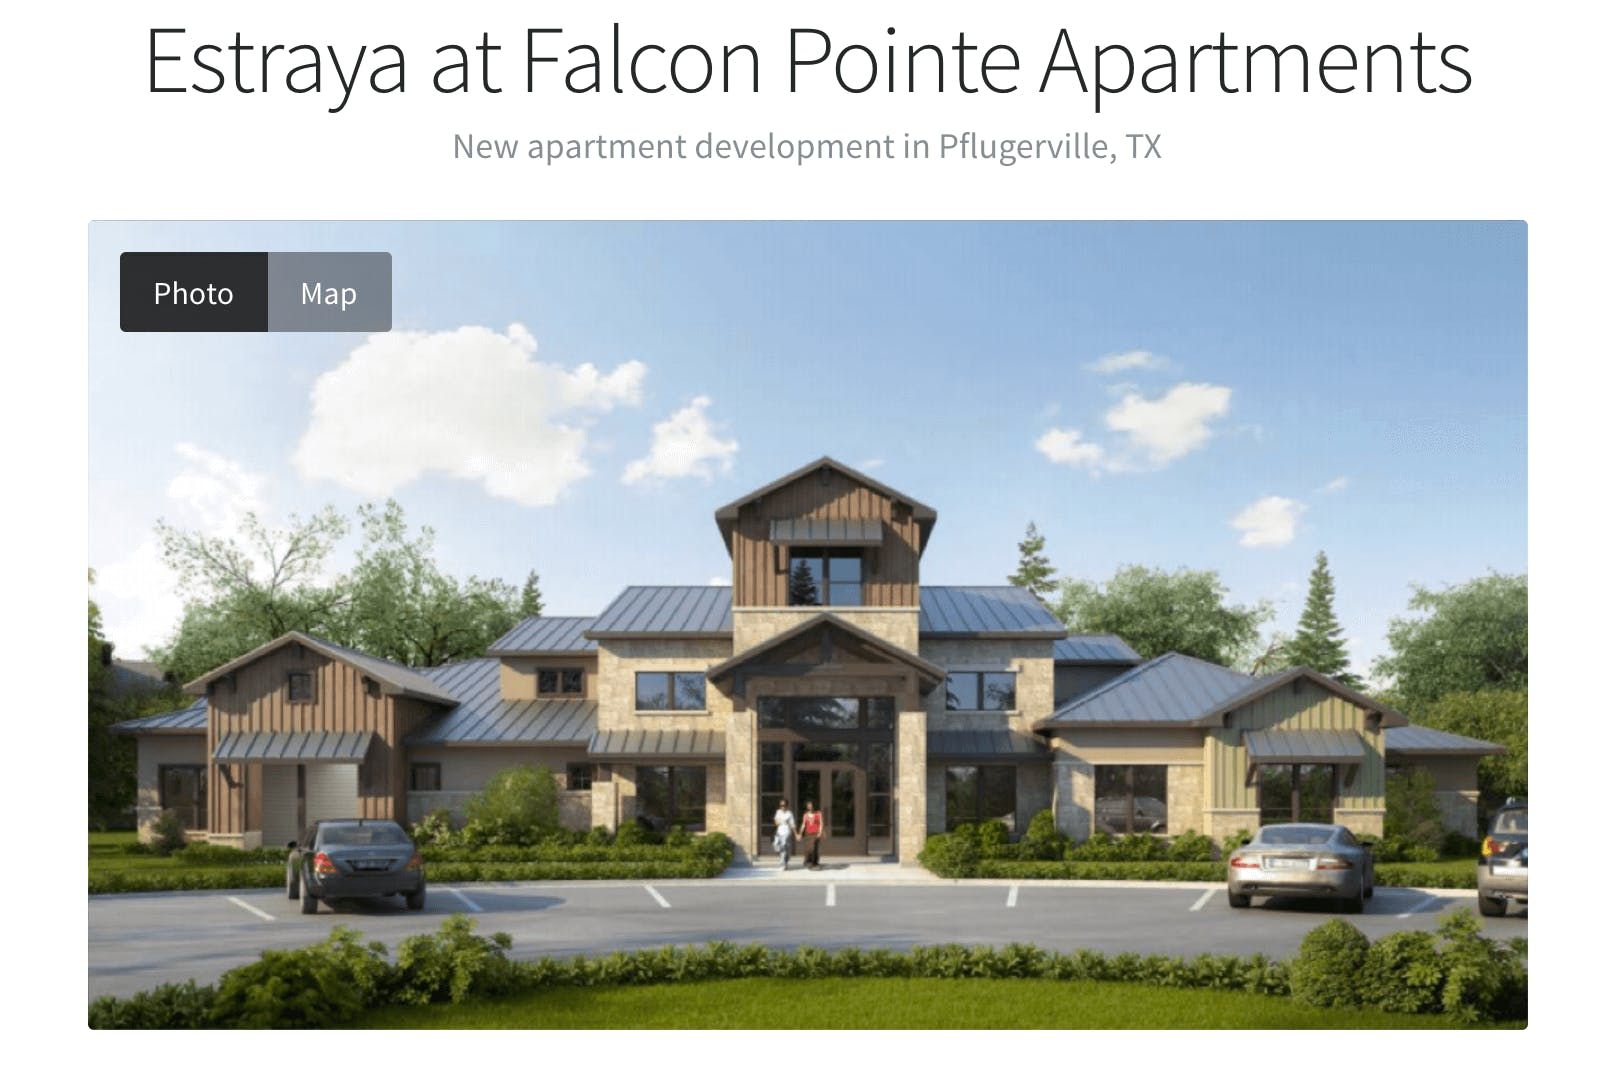 Estraya at falcon pointe apartments